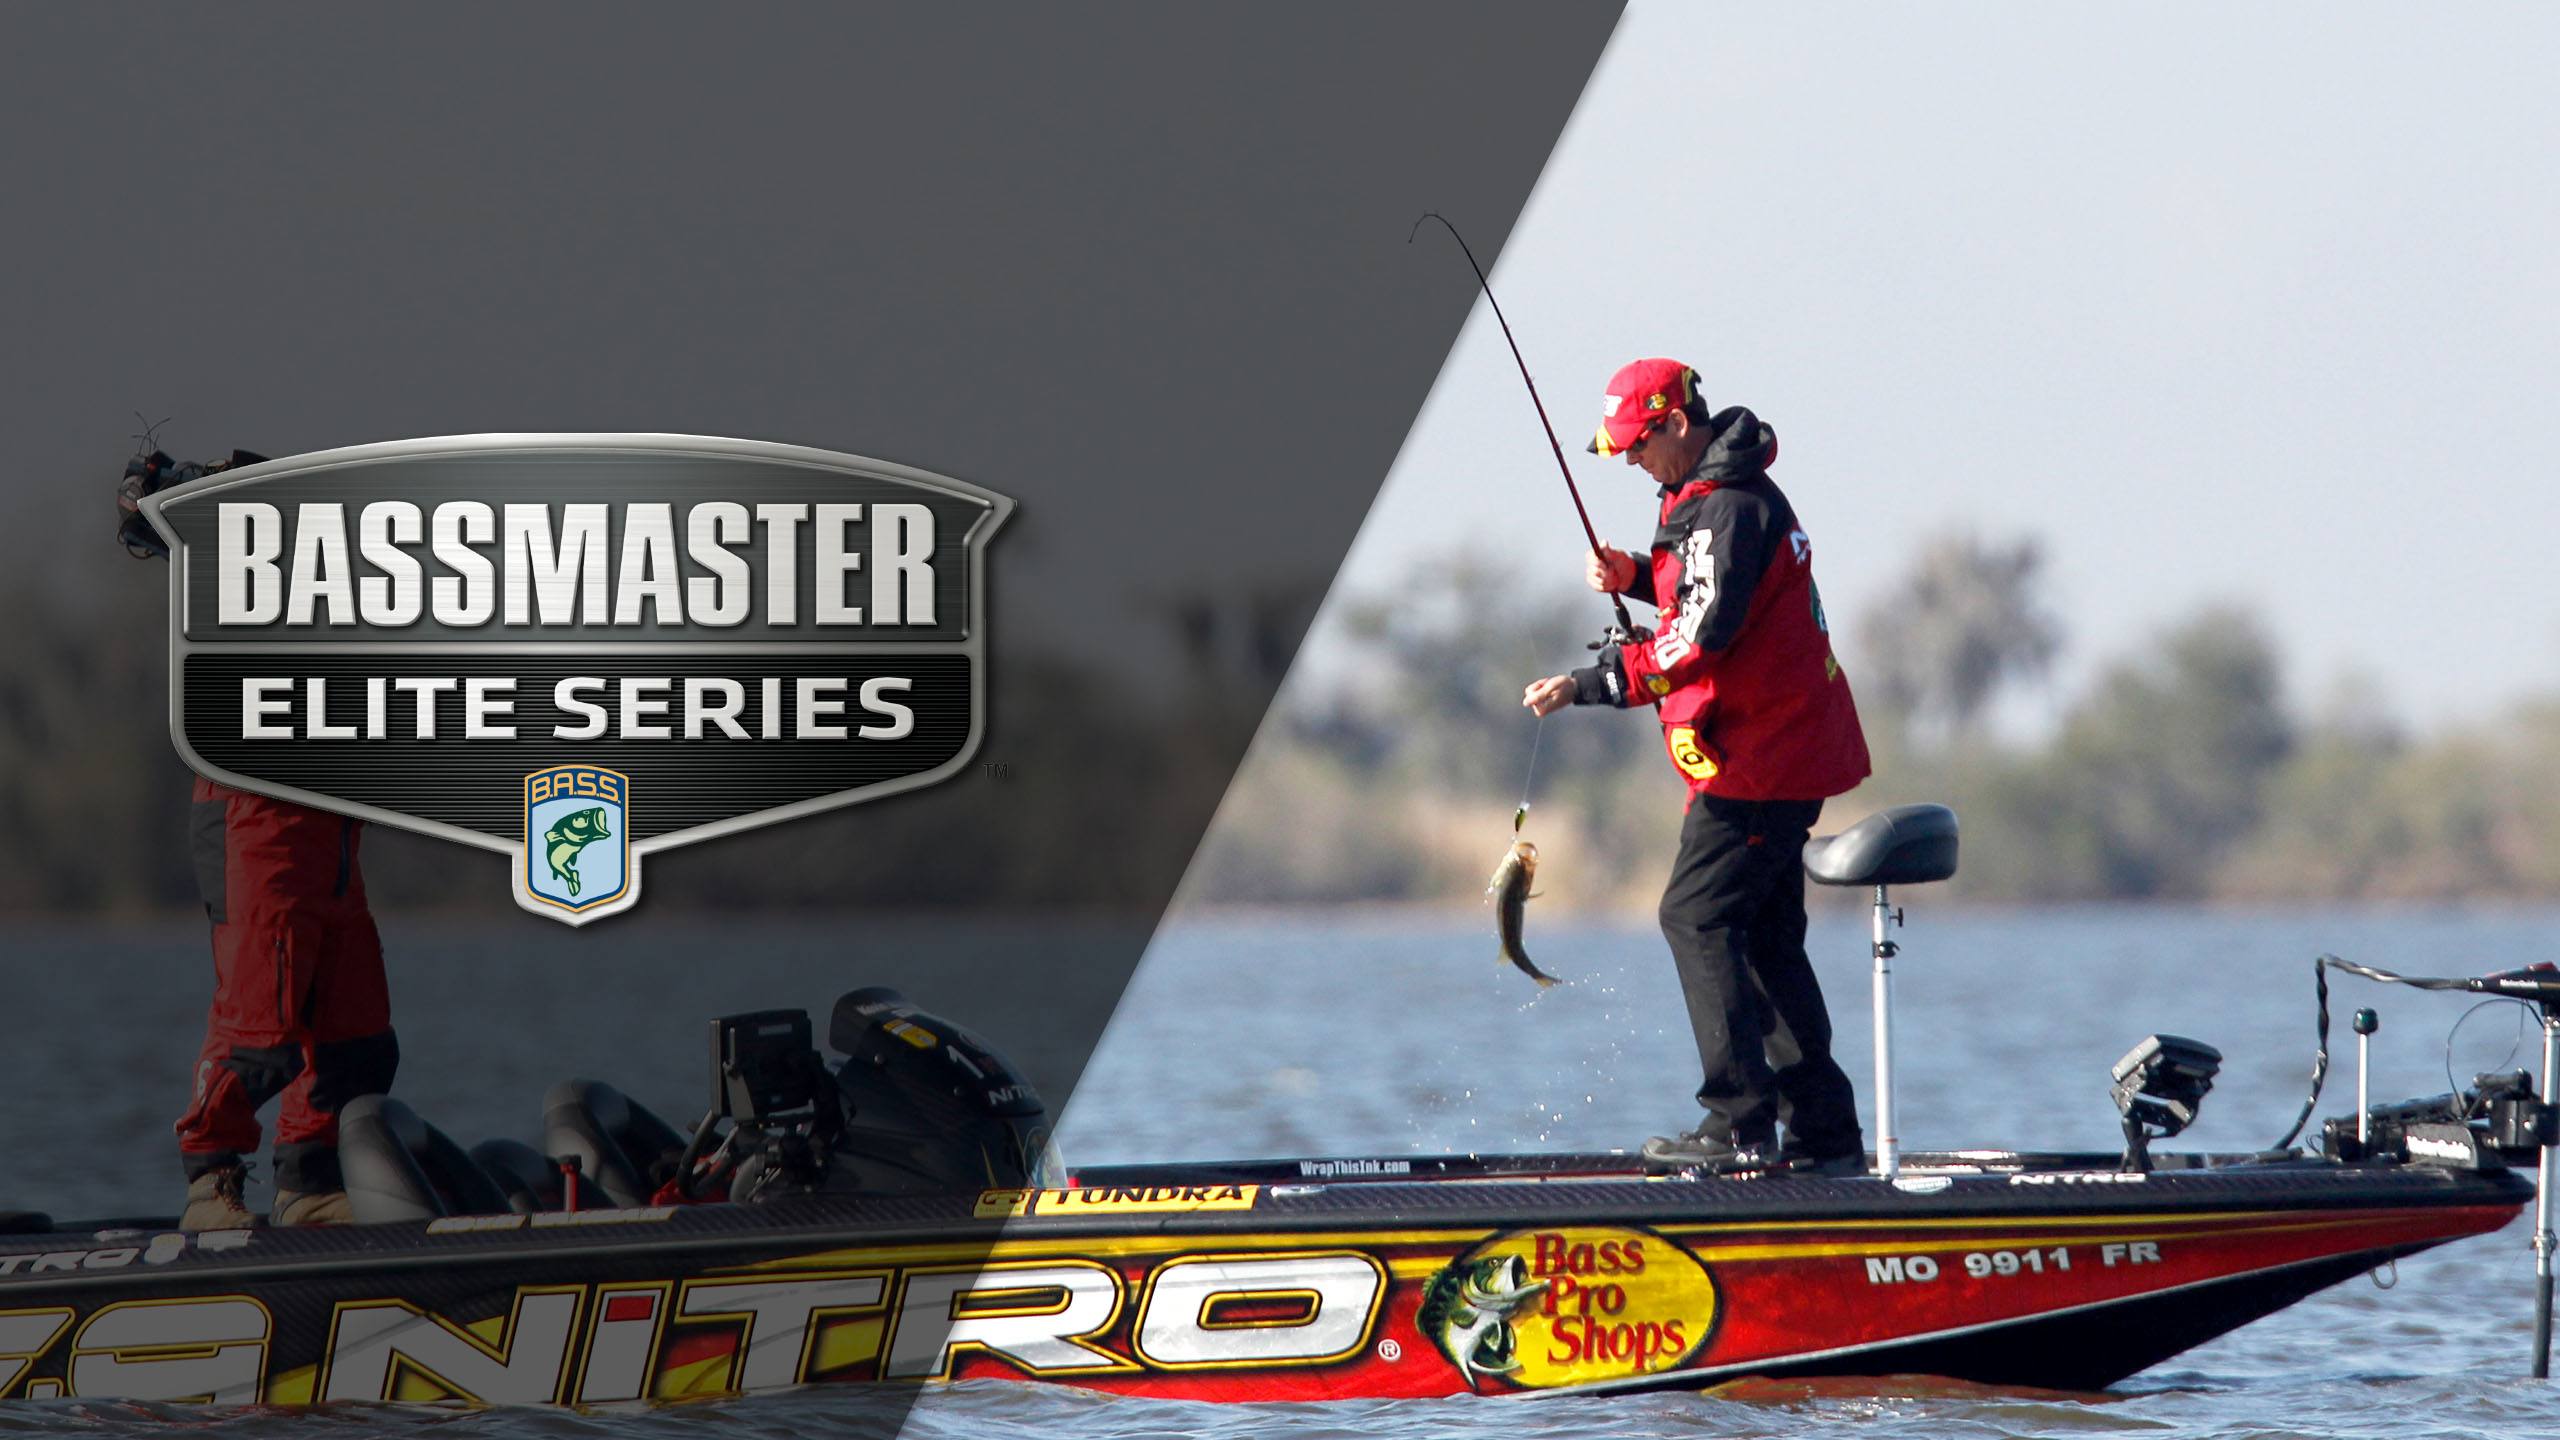 Bassmaster Elite Series: Winning Ways #1